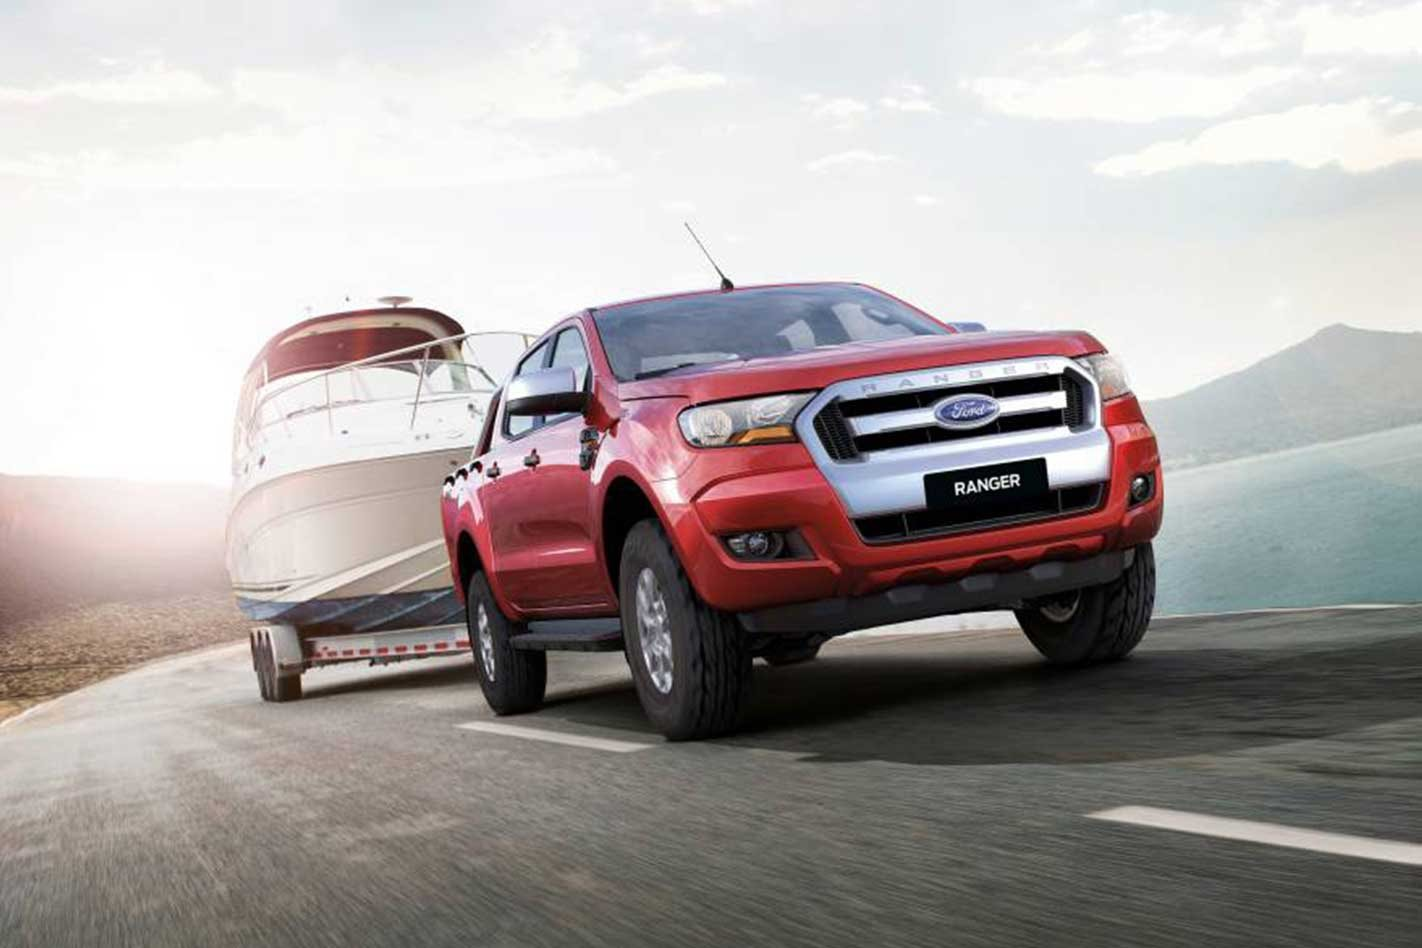 More vehicles added to ford ranger recall